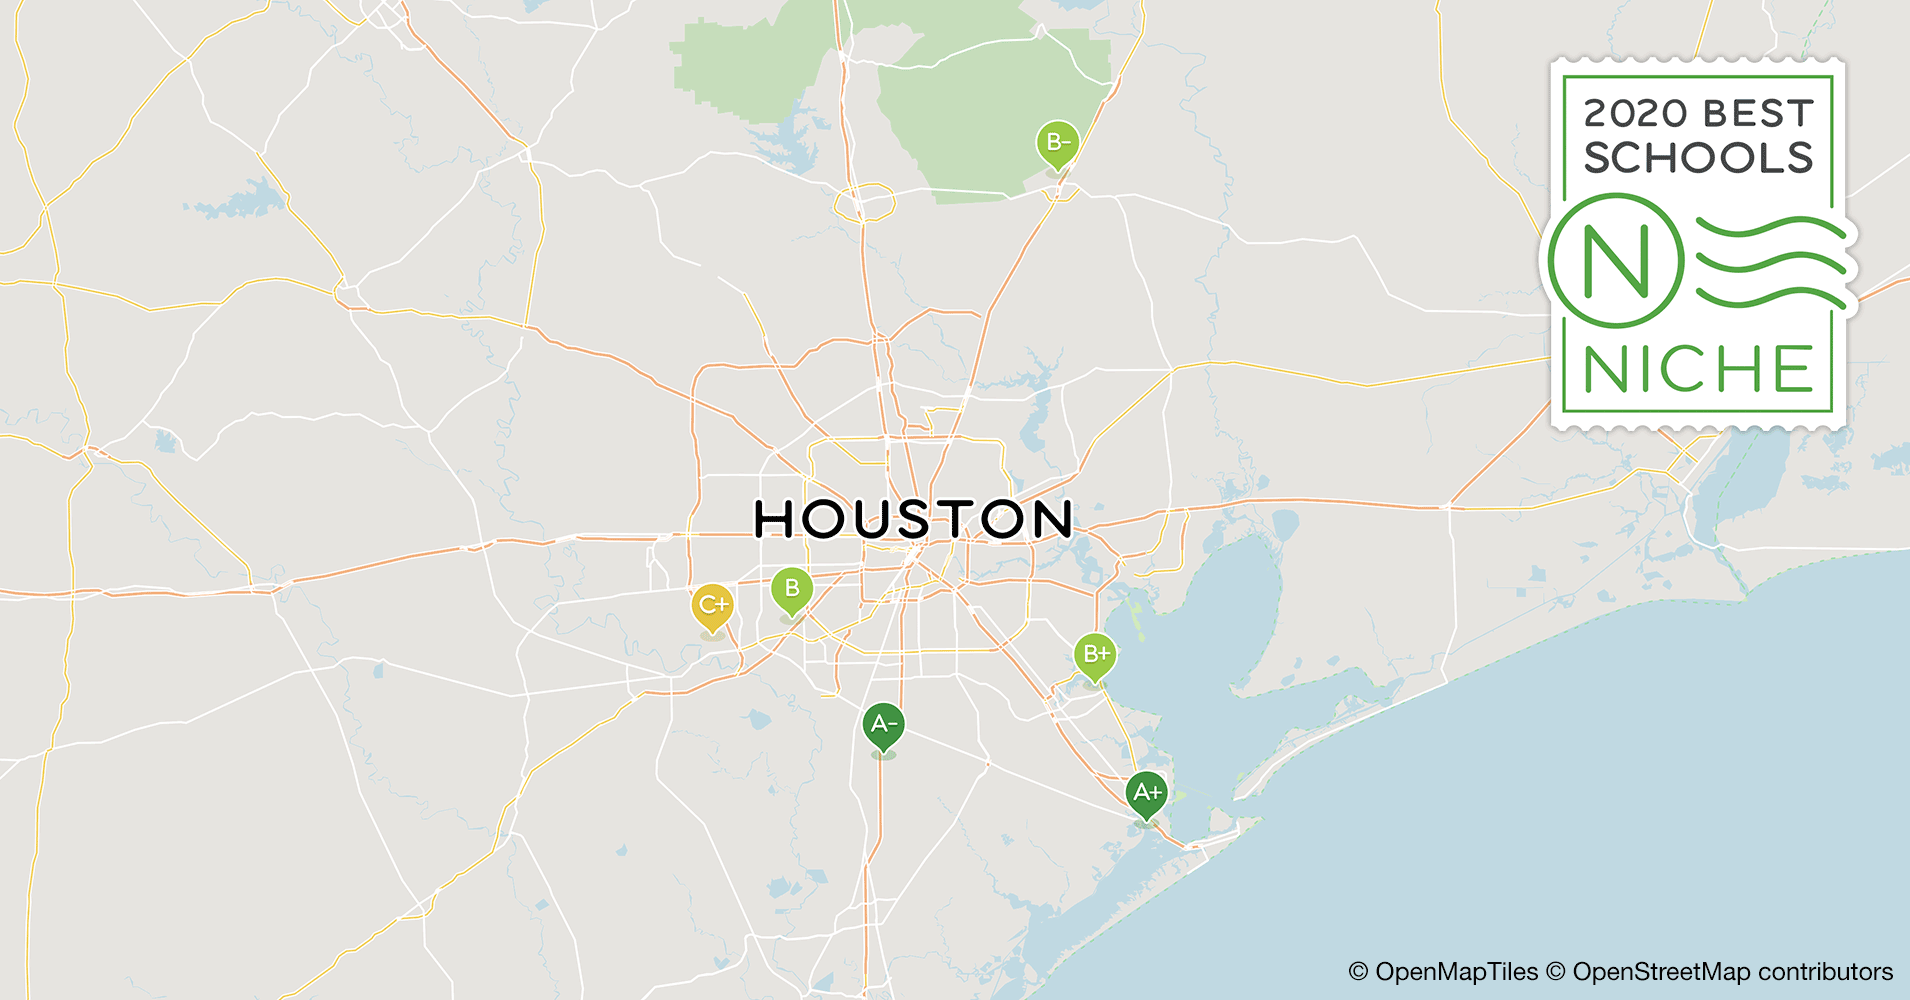 2020 Best Public High Schools in the Houston Area - Niche